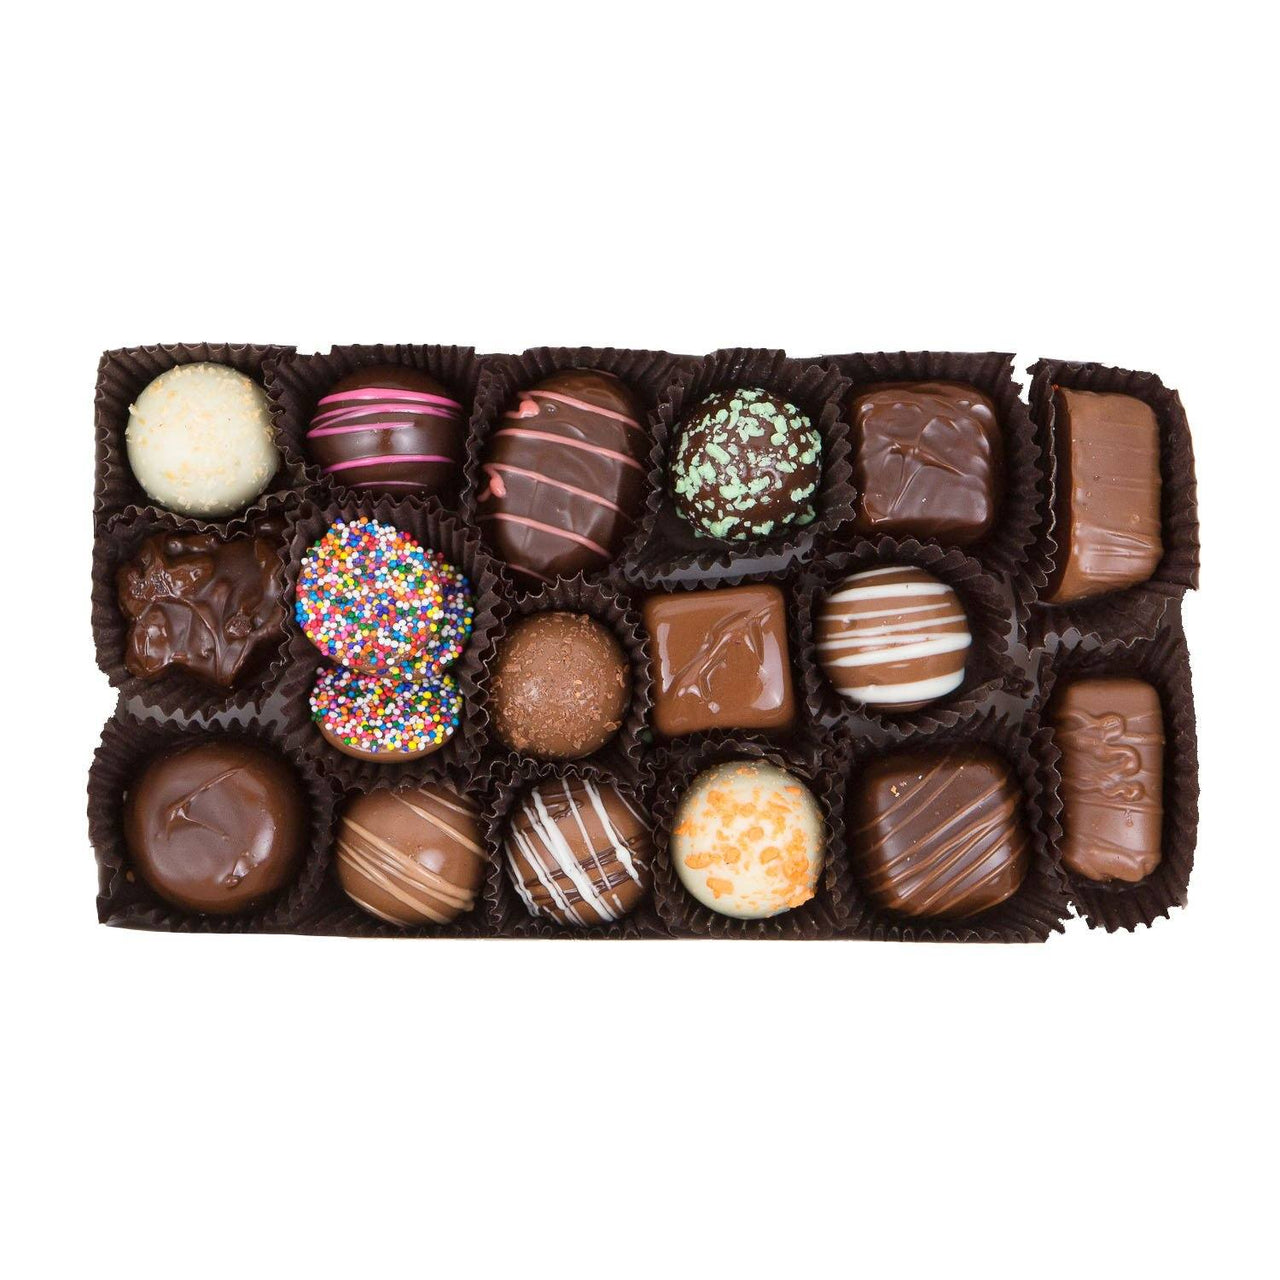 Gifts for Grandpa - Assorted Chocolate Gift Box - Jackie's Chocolate